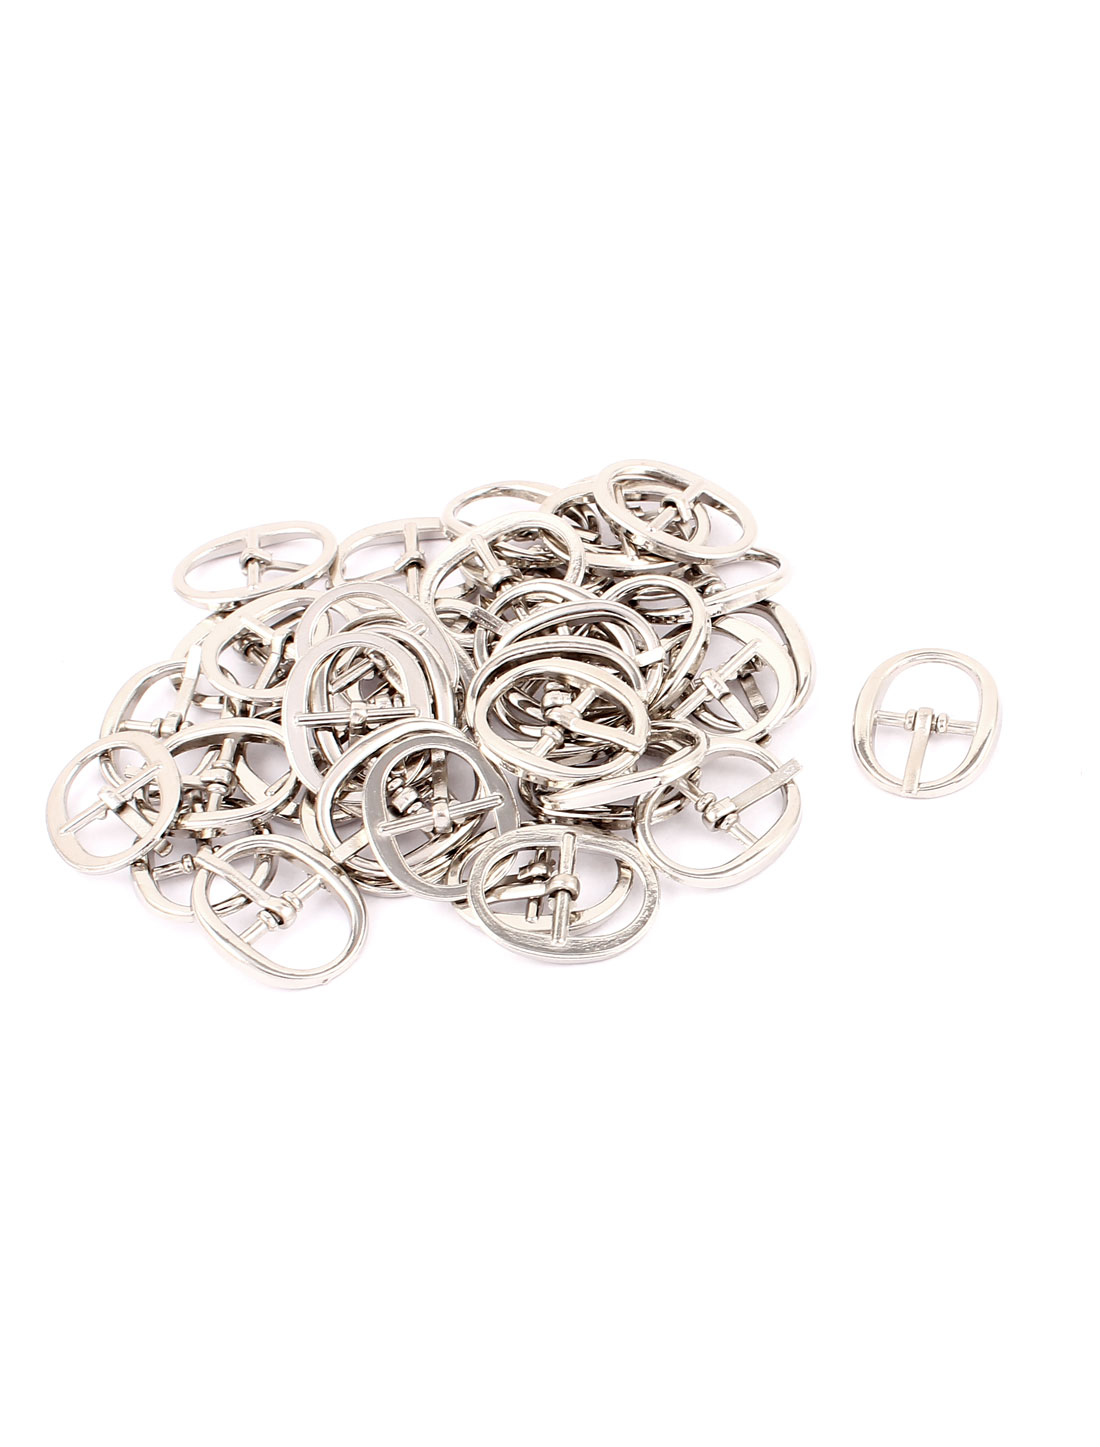 Metal Single Prong Pin Oval Shoes Clip Buckles Silver Tone 40 Pcs